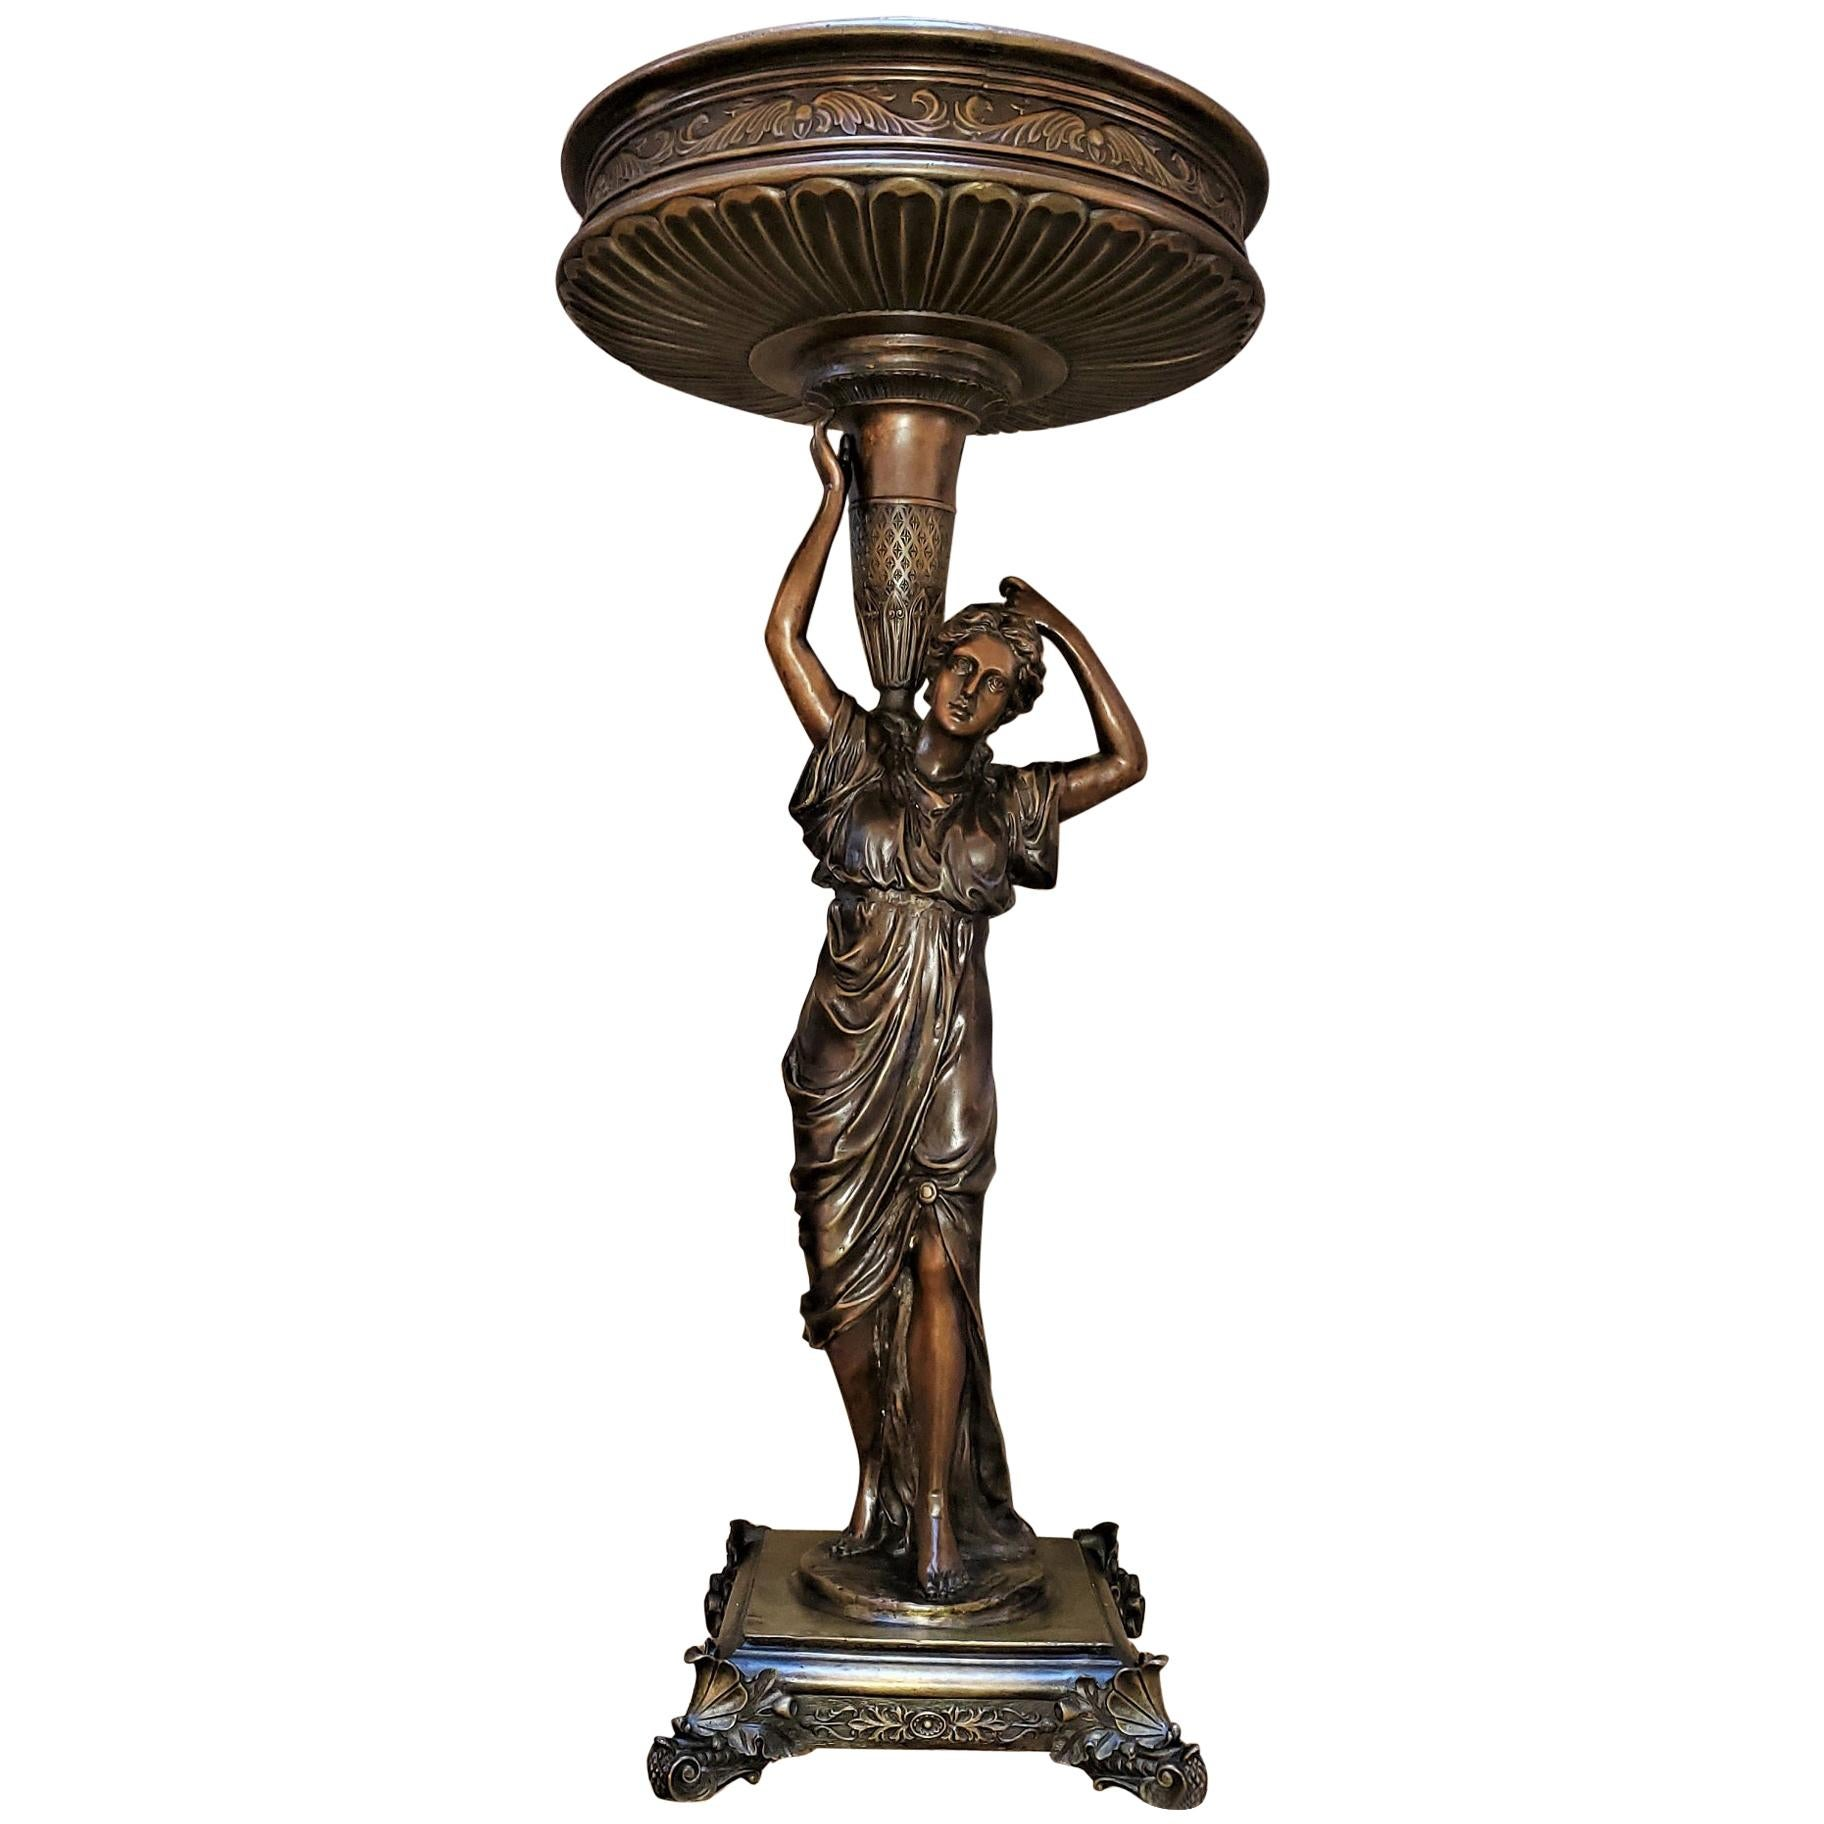 19th Century French Bronze Centerpiece by A Carrier